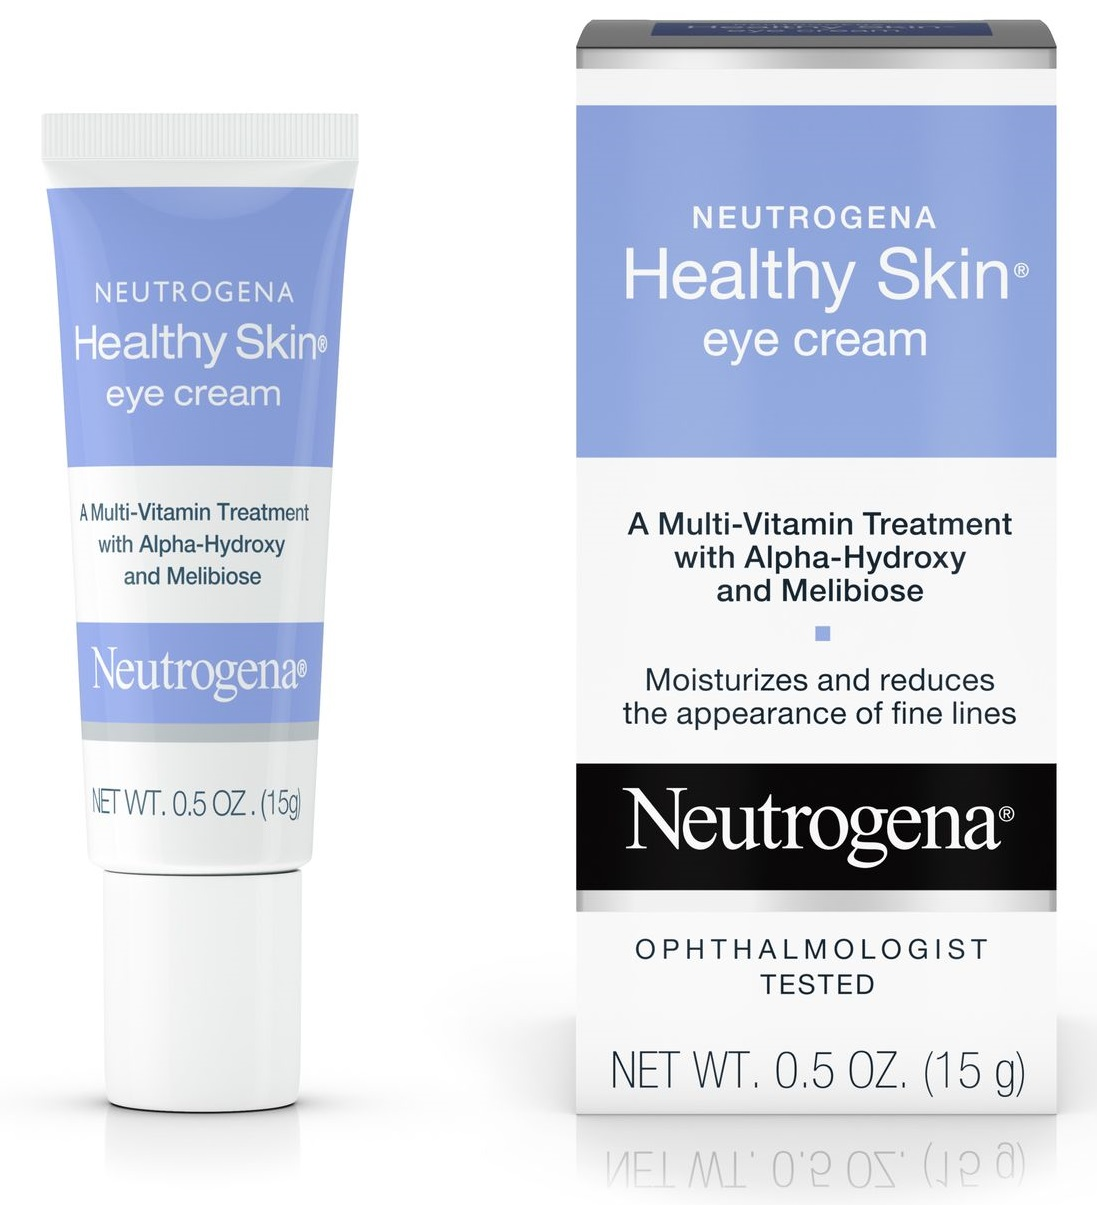 Neutrogena® Healthy Skin Eye Cream